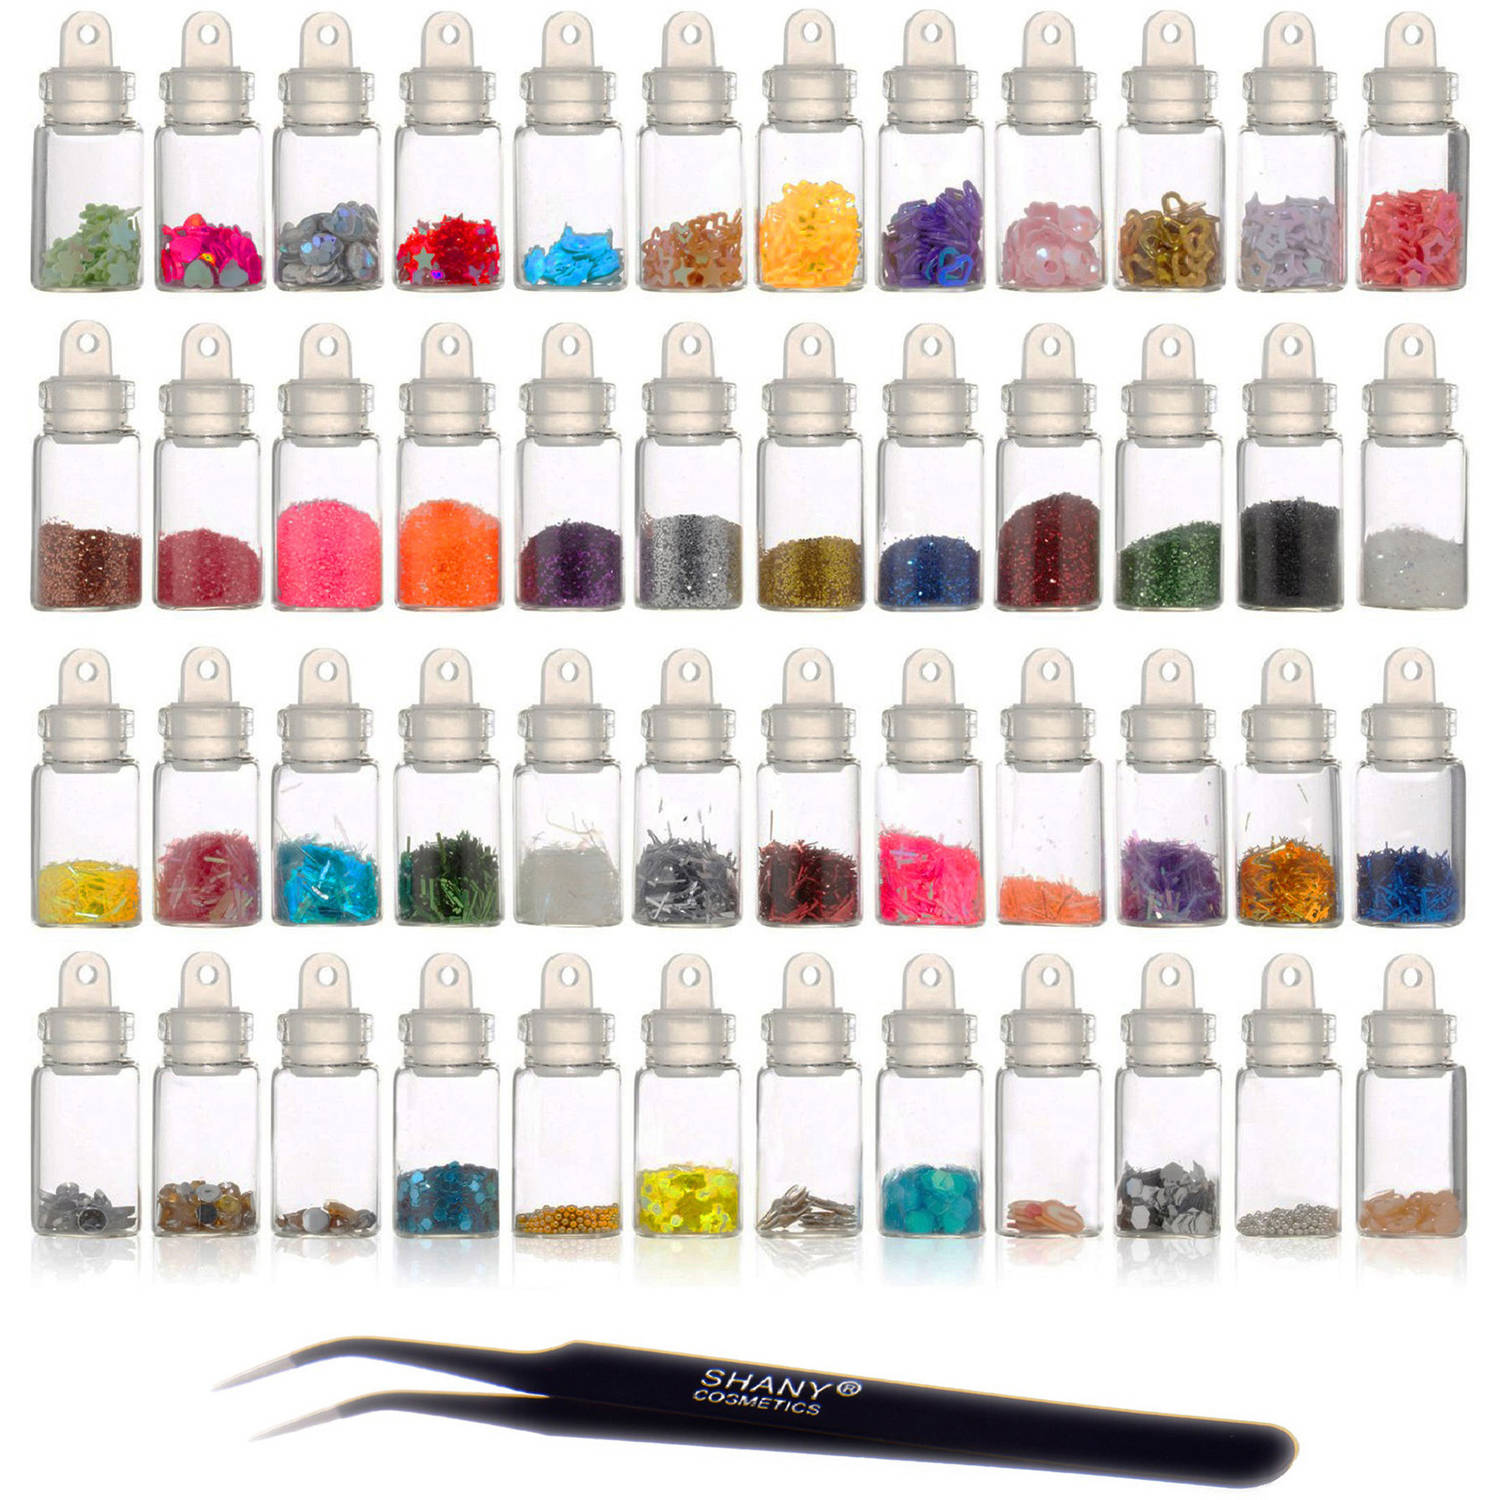 SHANY 3D Nail Art Decoration Mini Bottle Set, 49 pc - Walmart.com